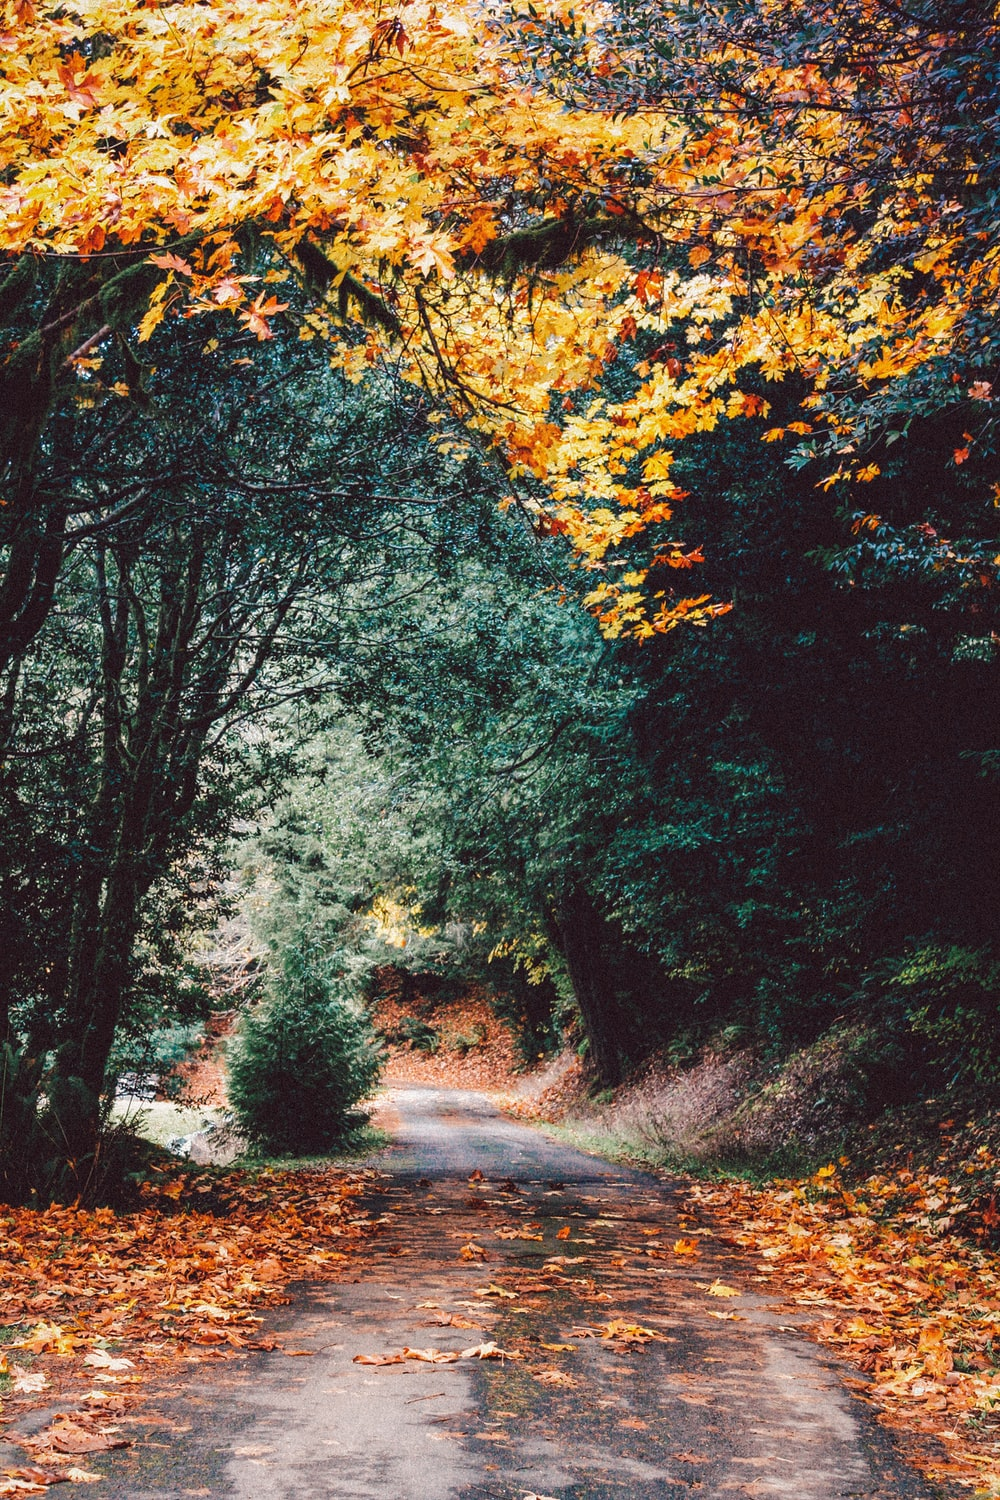 autumn images download free images on unsplash